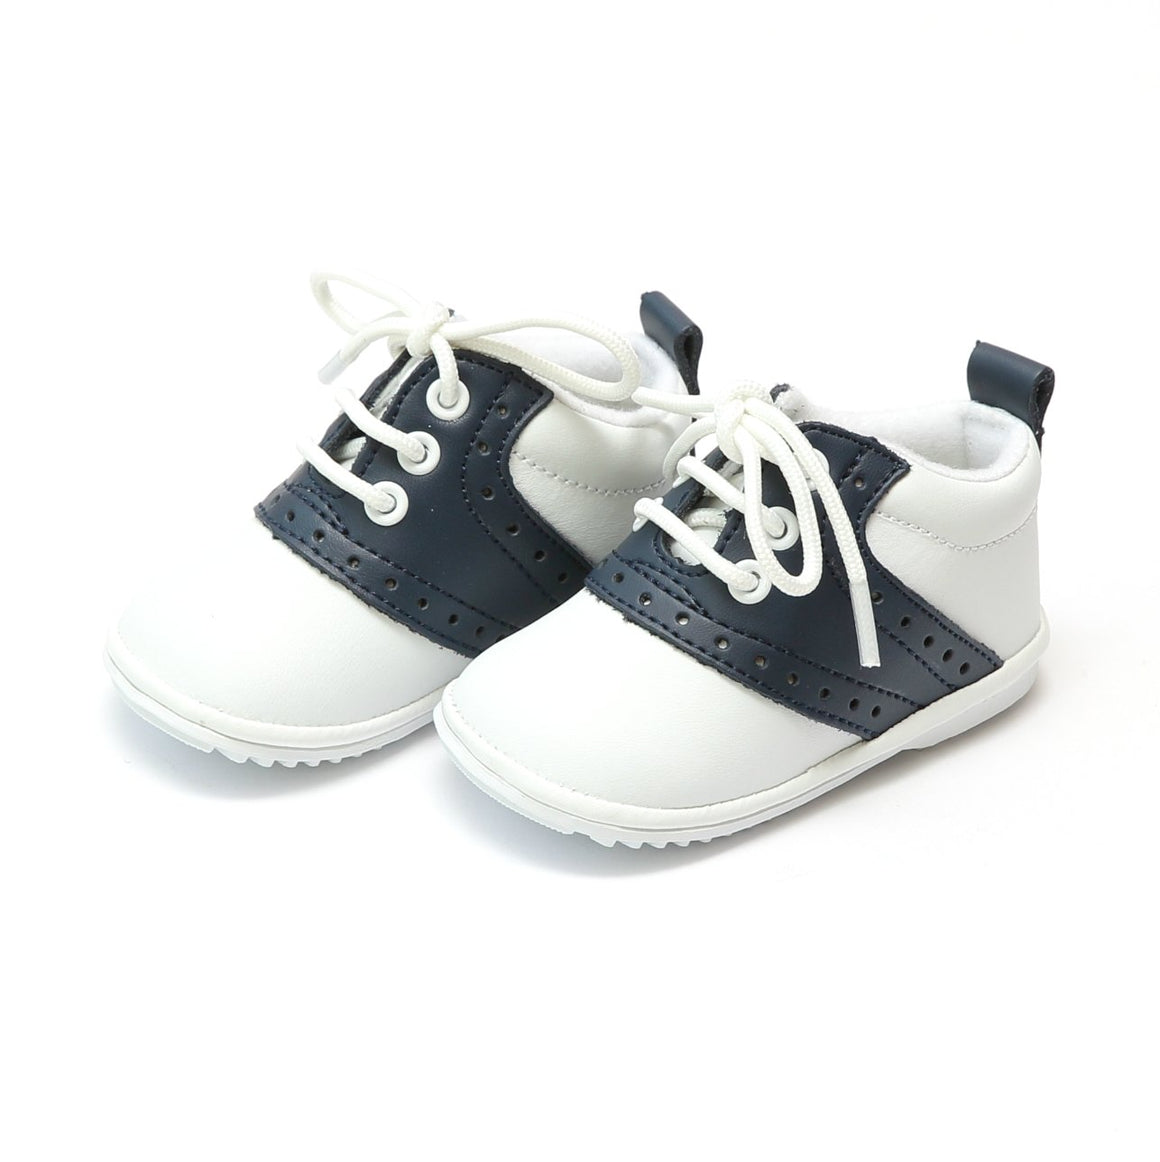 navy and white leather baby boys saddle oxford lace-up boots from L'Amour Shoes, available at Threadfare